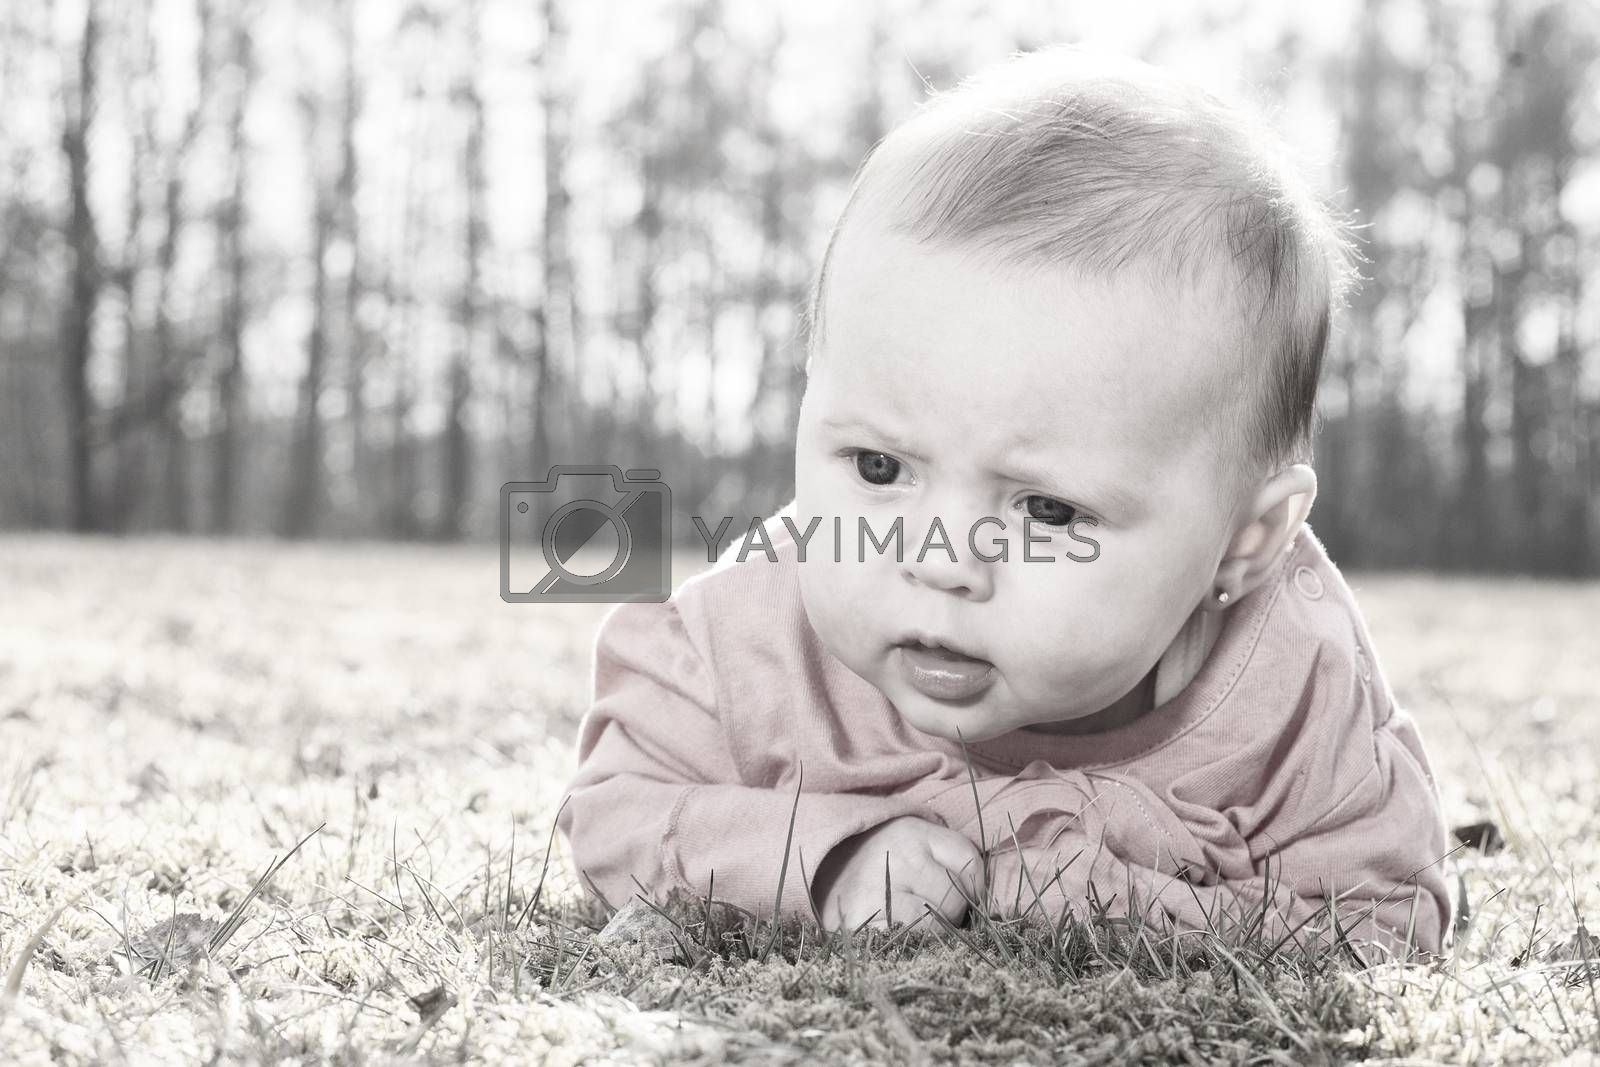 Little baby on the grass in the sun